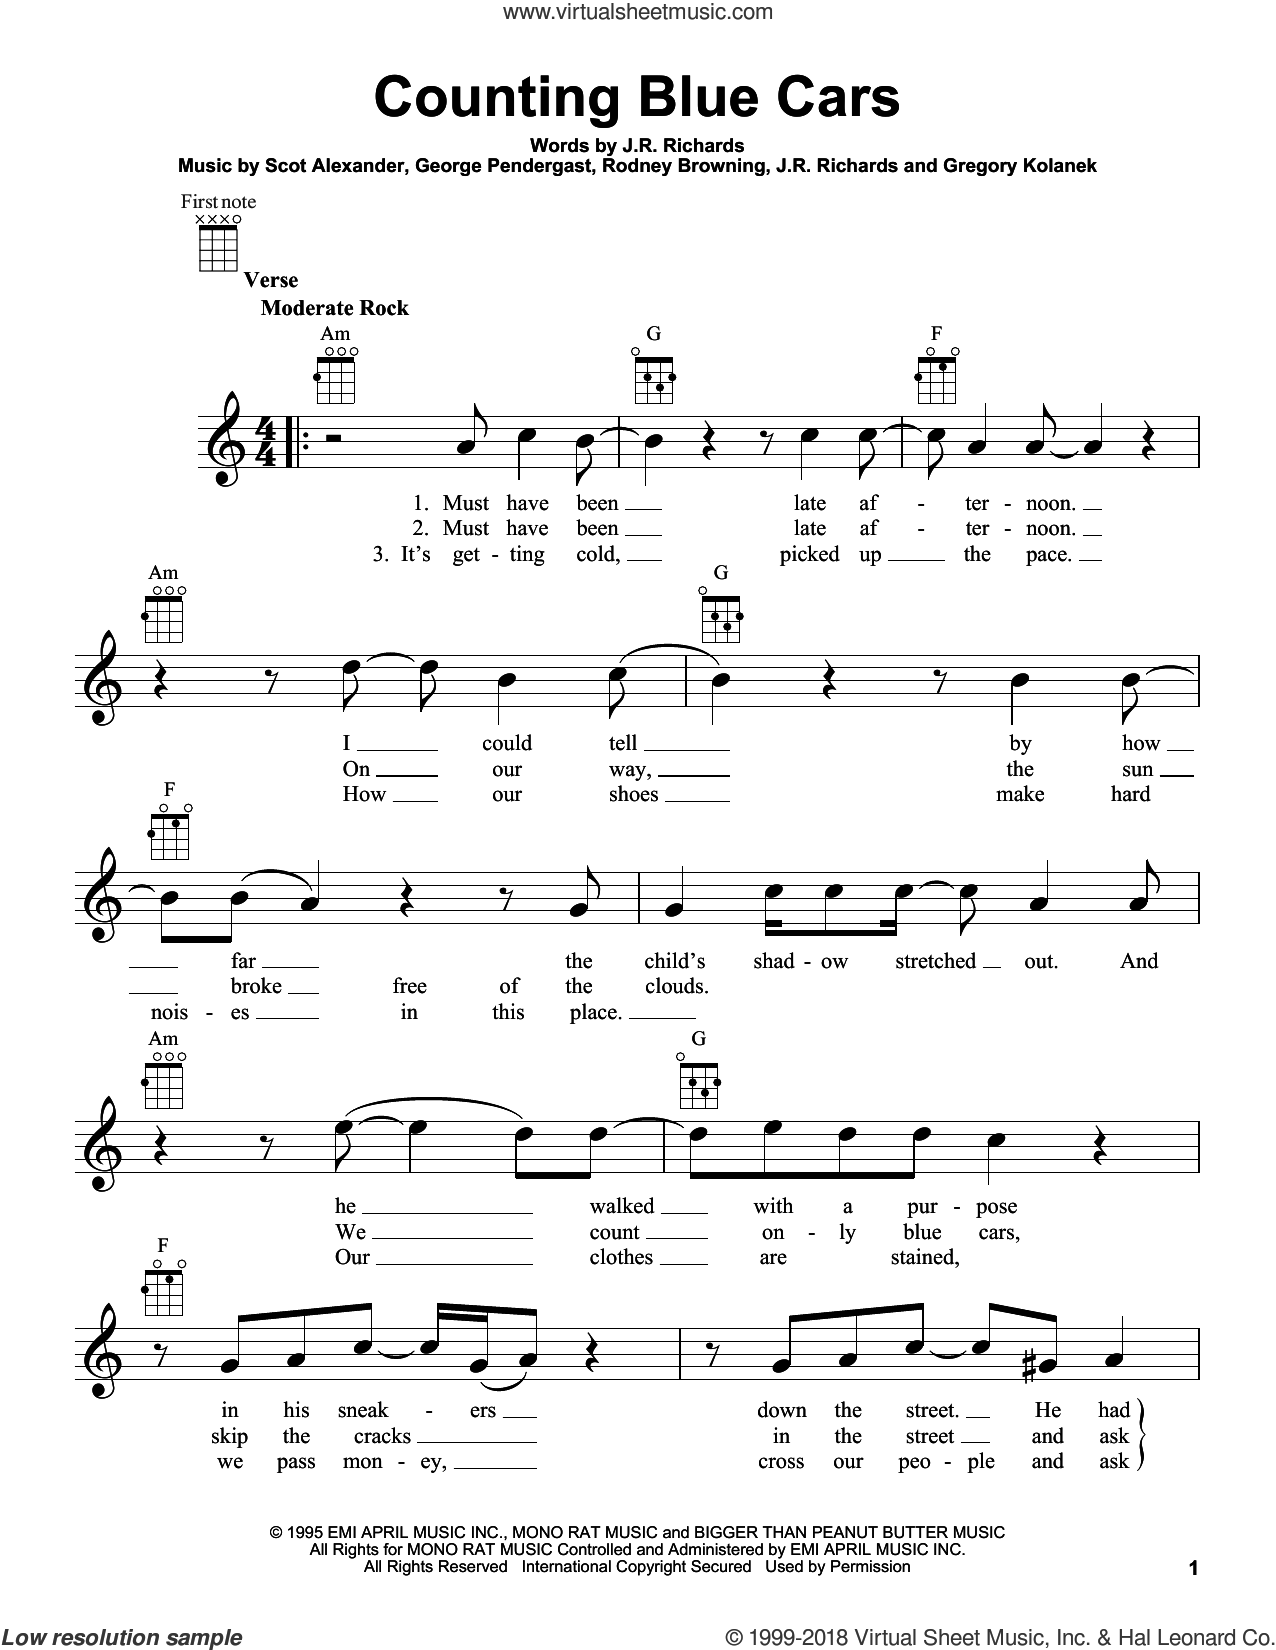 Counting Blue Cars sheet music for ukulele by Dishwalla. Score Image Preview.